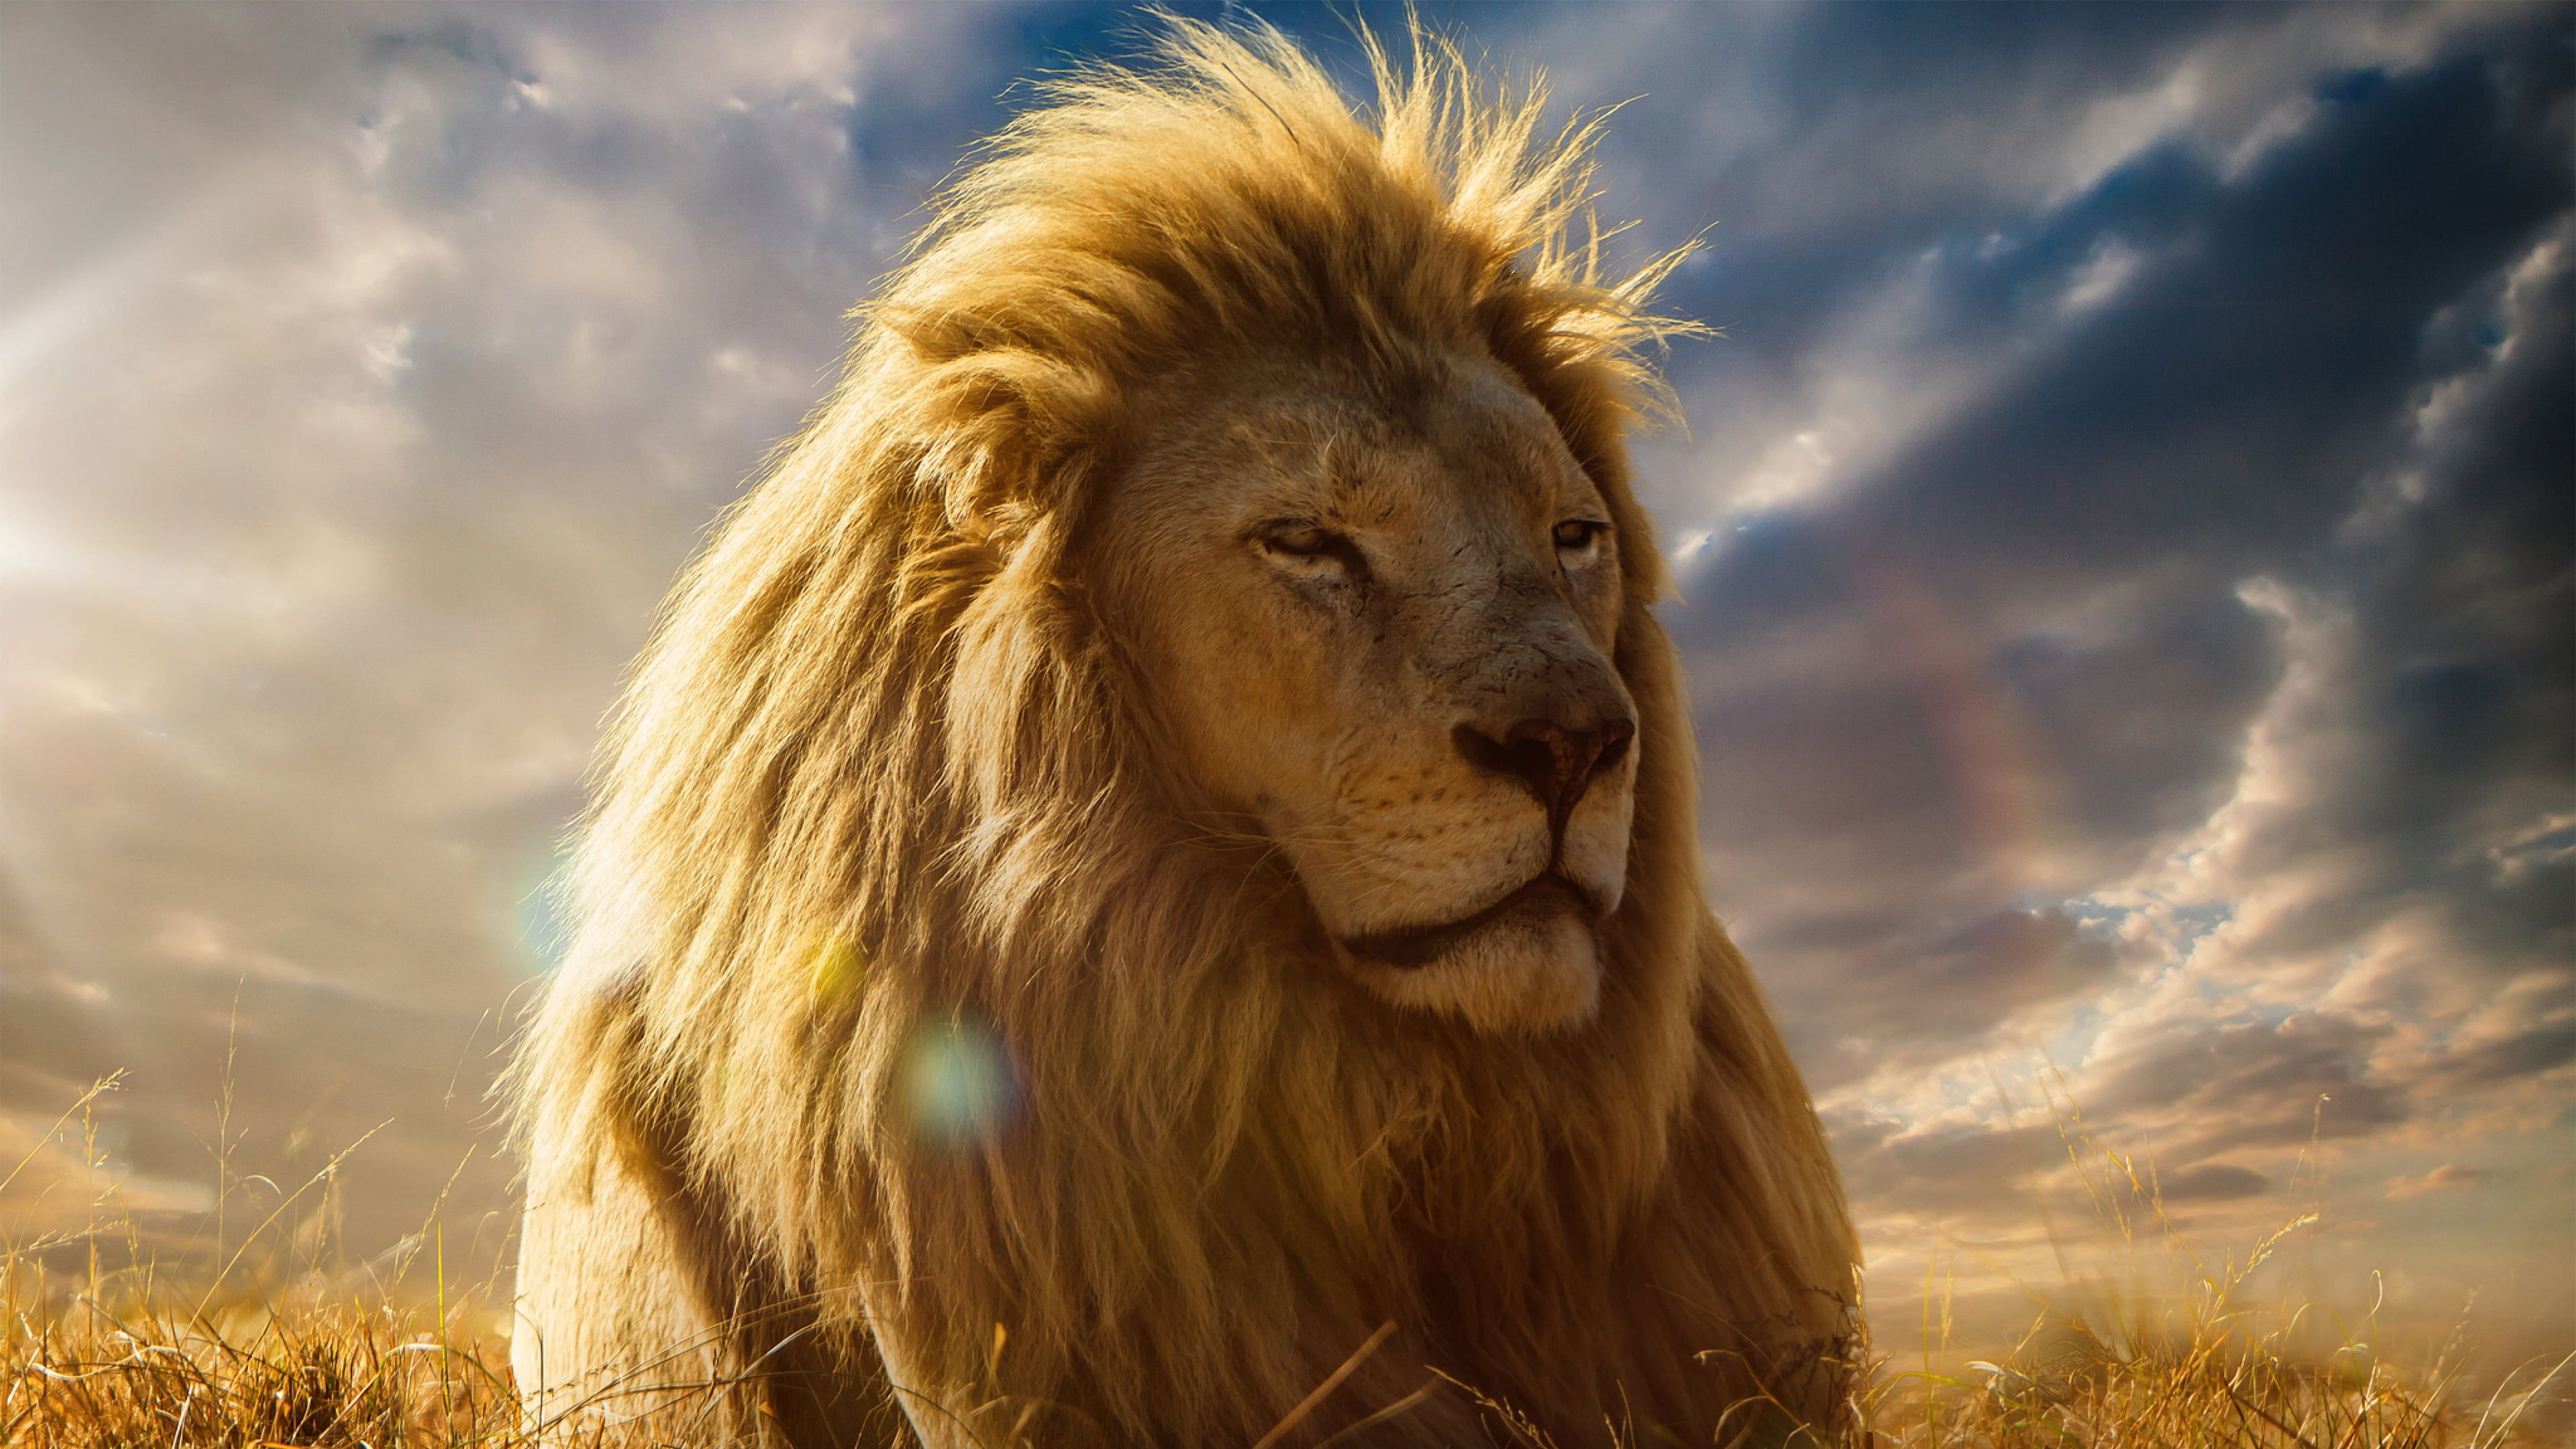 Narnia Wallpapers Top Free Narnia Backgrounds Wallpaperaccess